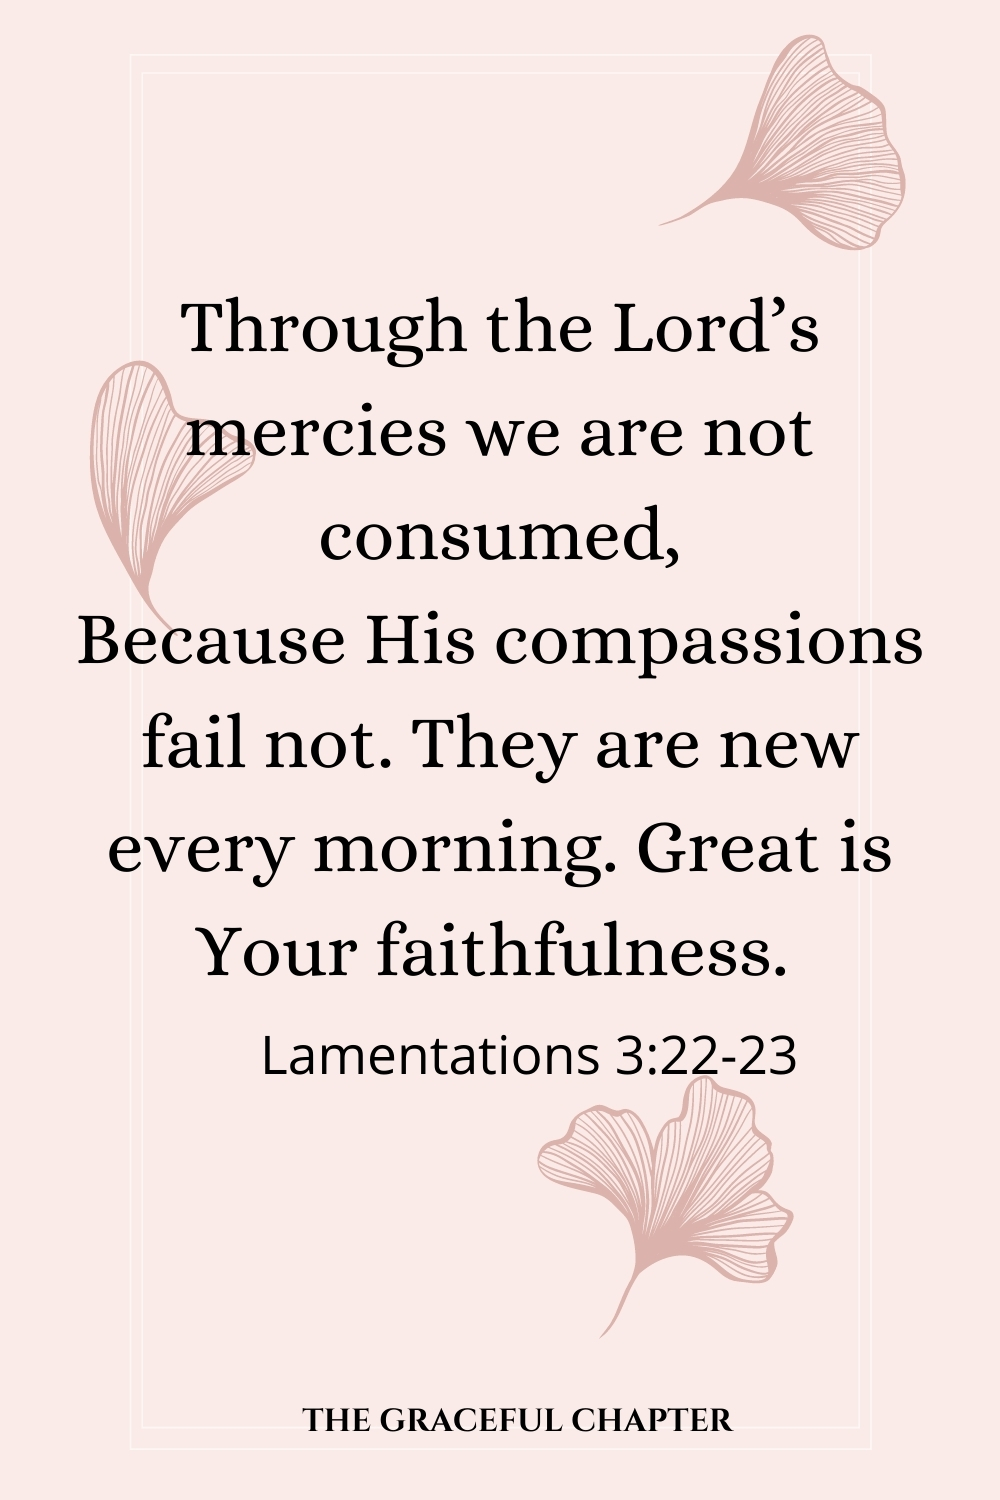 Through the Lord's mercies we are not consumed, Because His compassion fail not. They are new every morning. Great is Your faithfulness.  Lamentations 3:22-23